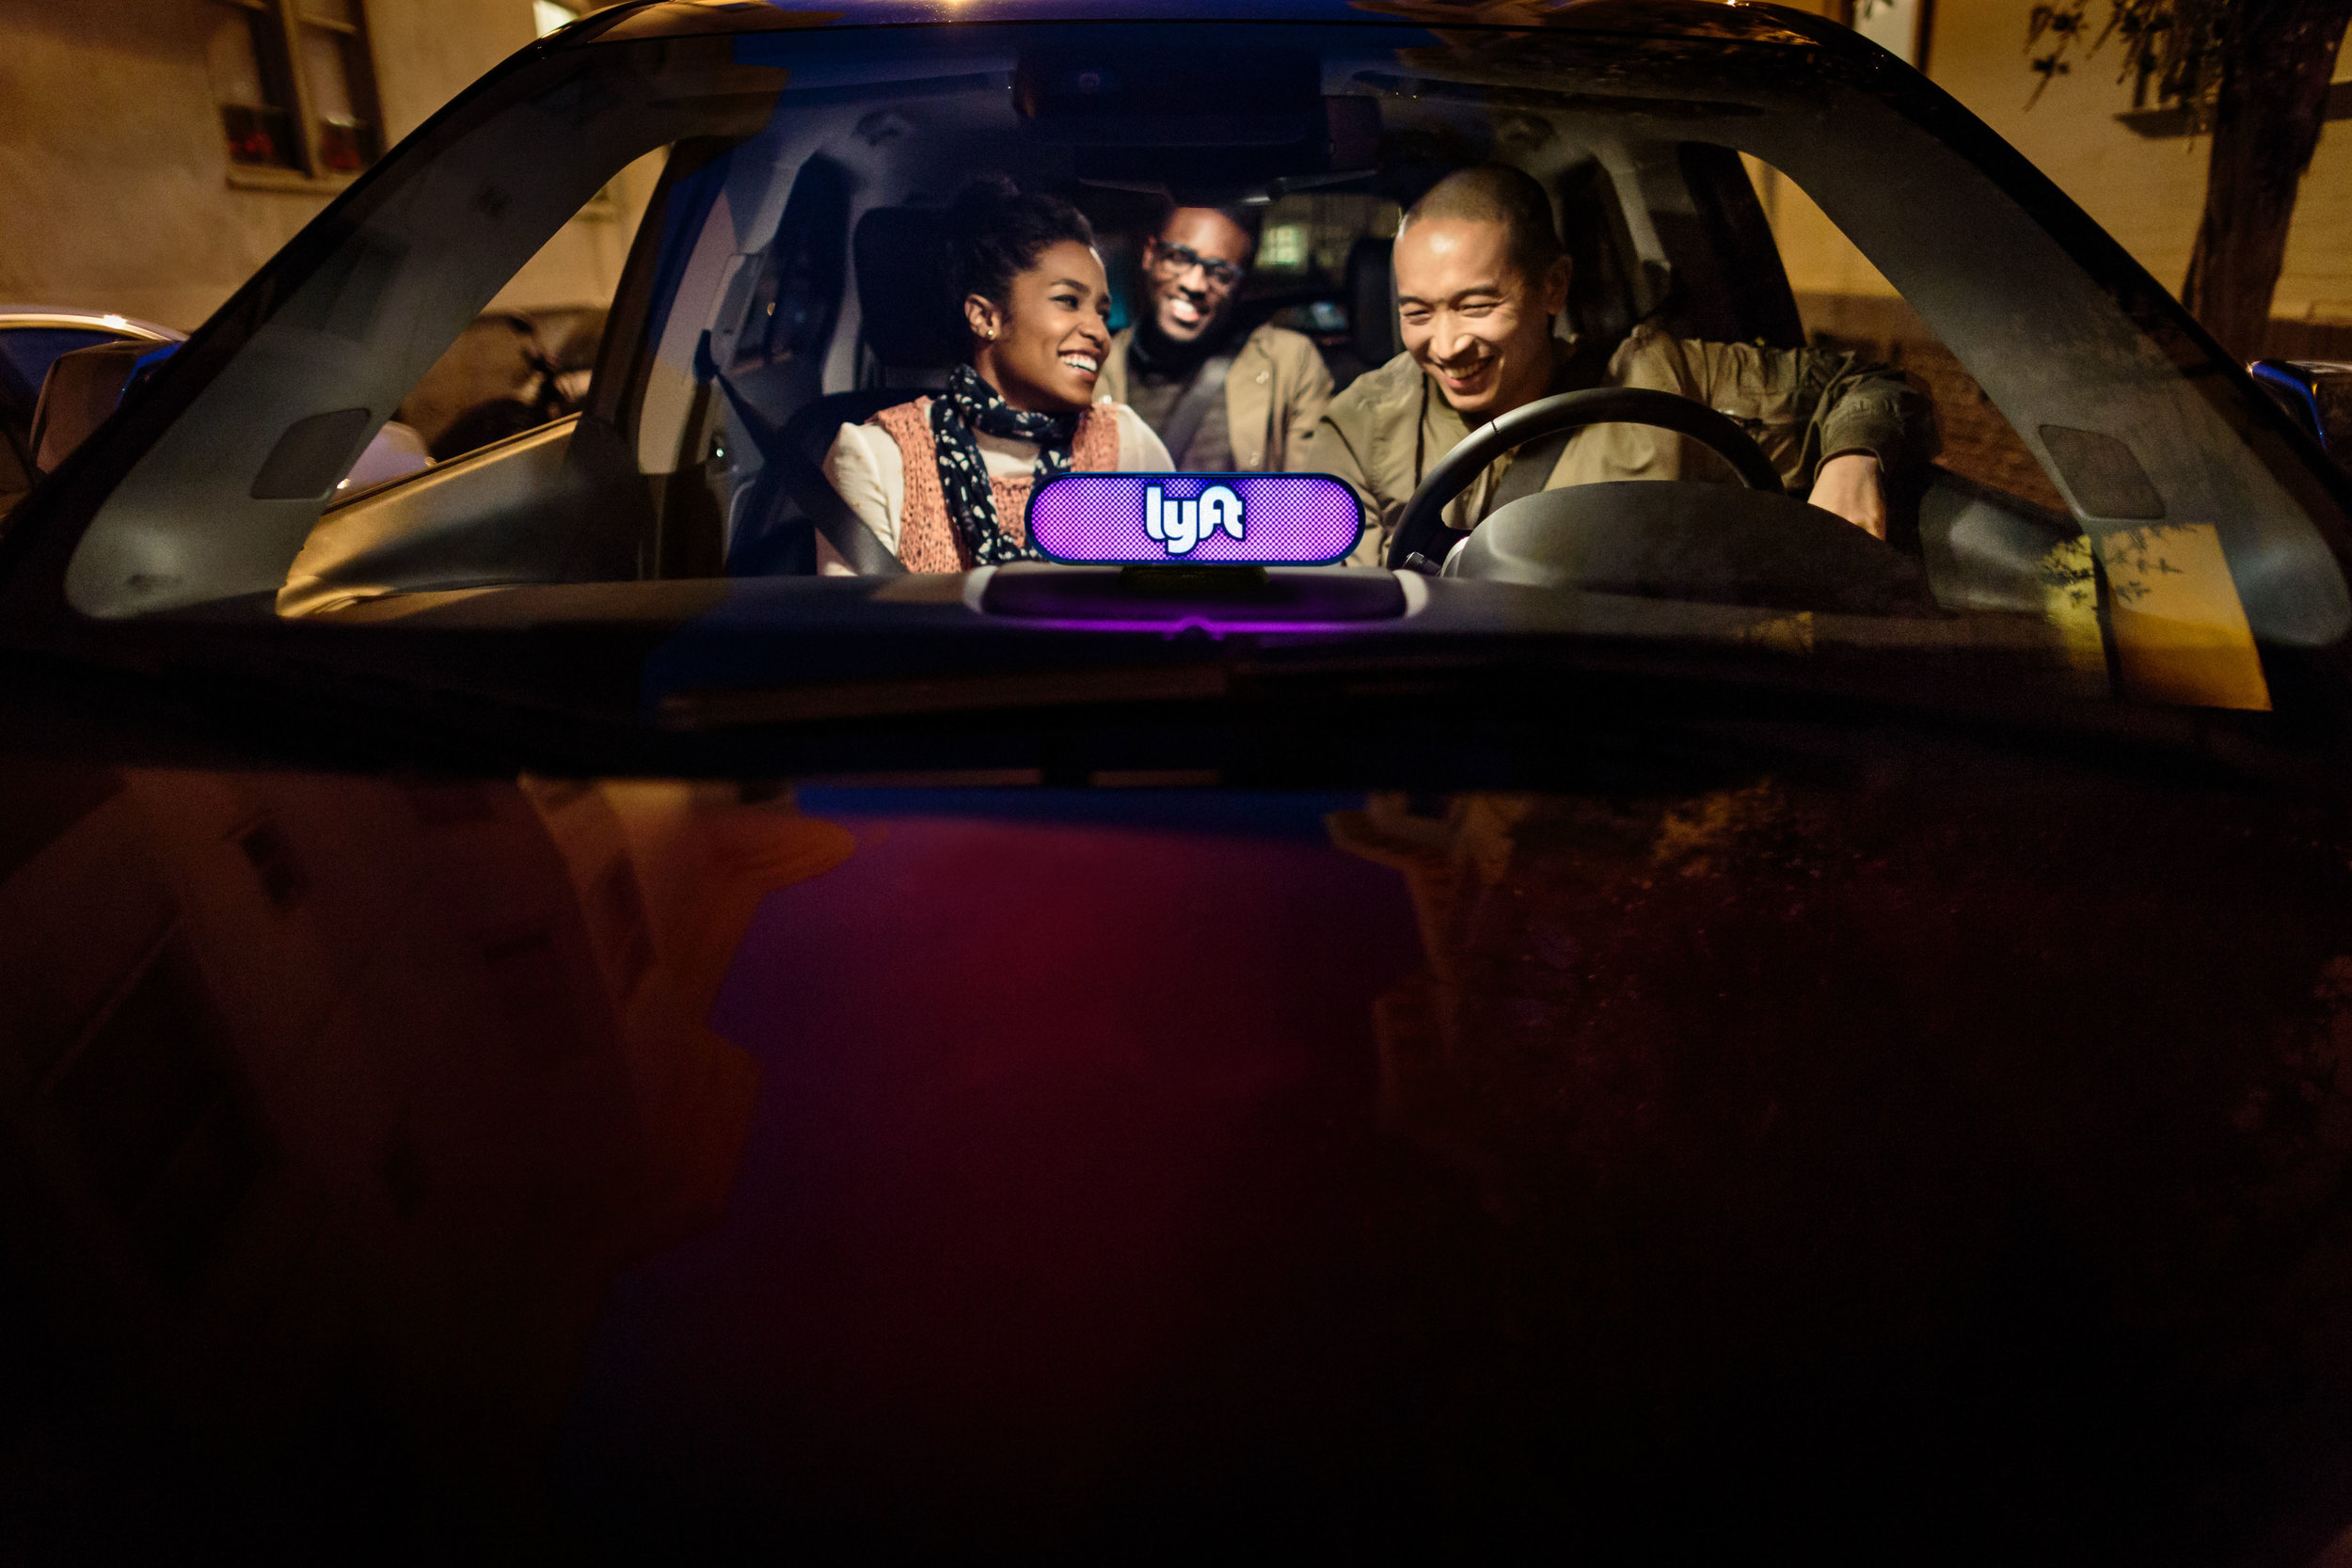 Suspiciously happy Lyft-ers. Maybe they're really psyched for those miles? (Photo: Lyft)